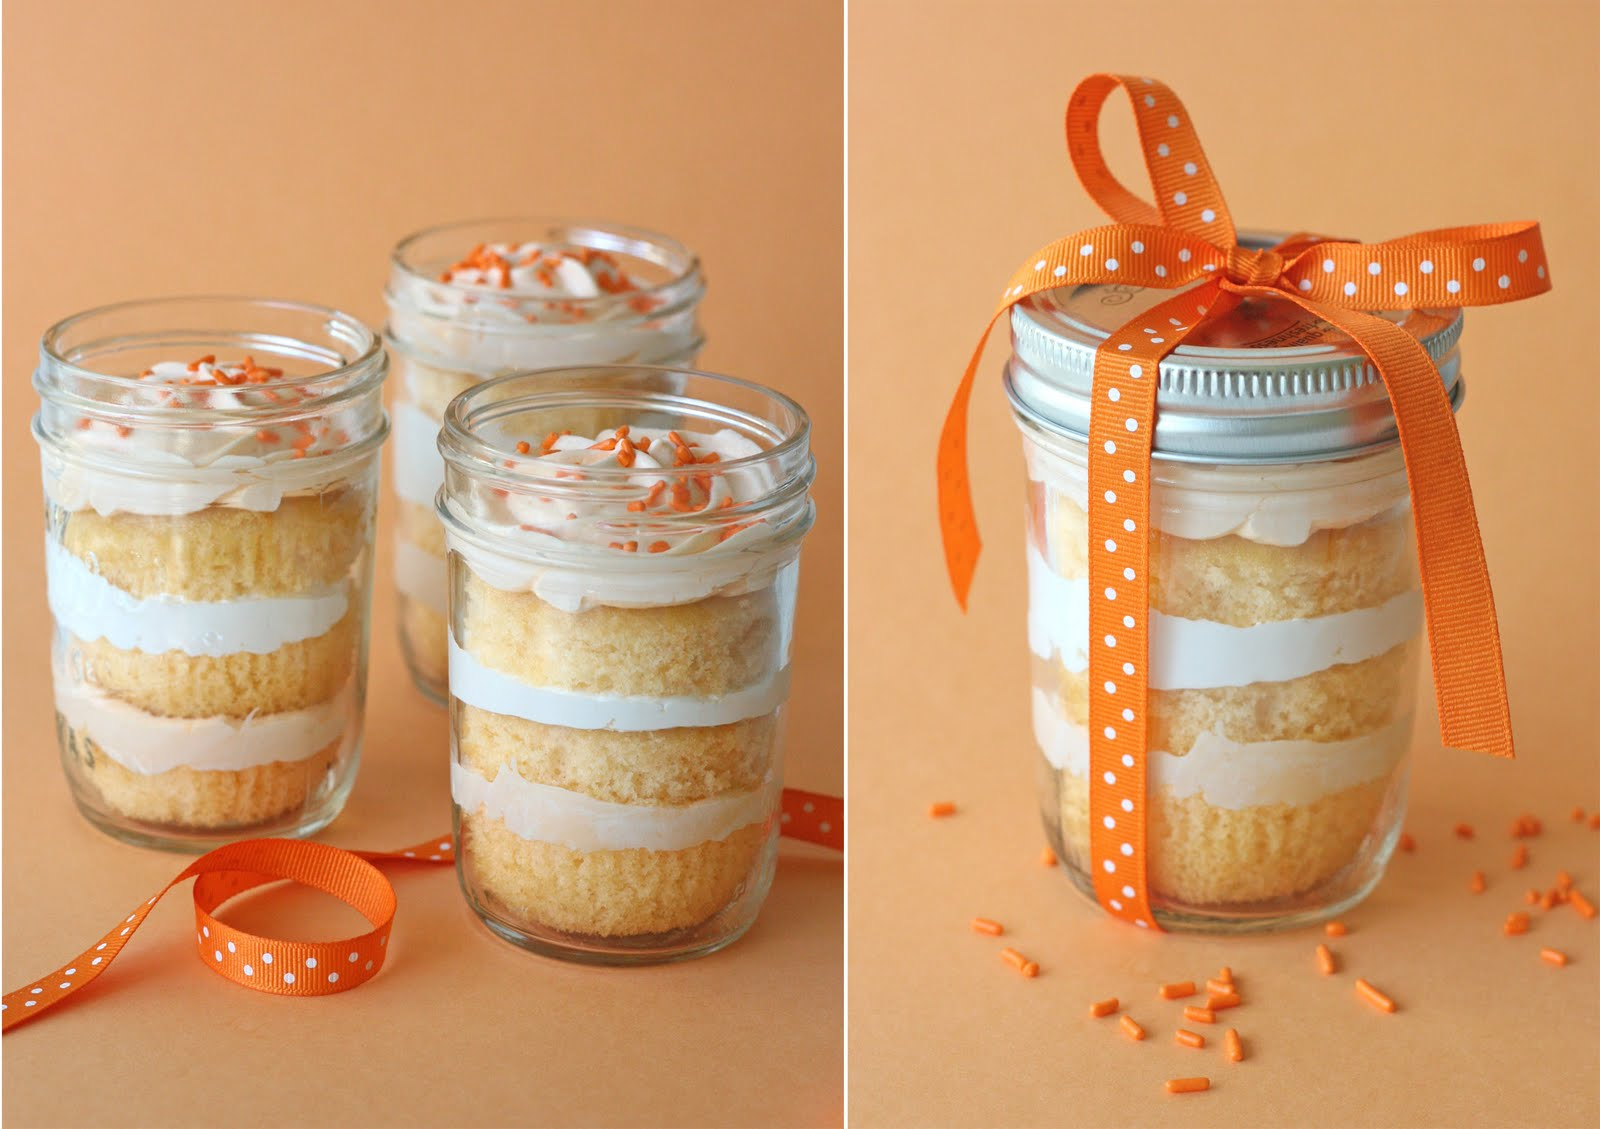 Orange Dreamsicle Cupcakes in a Jar - Cookies and Cups